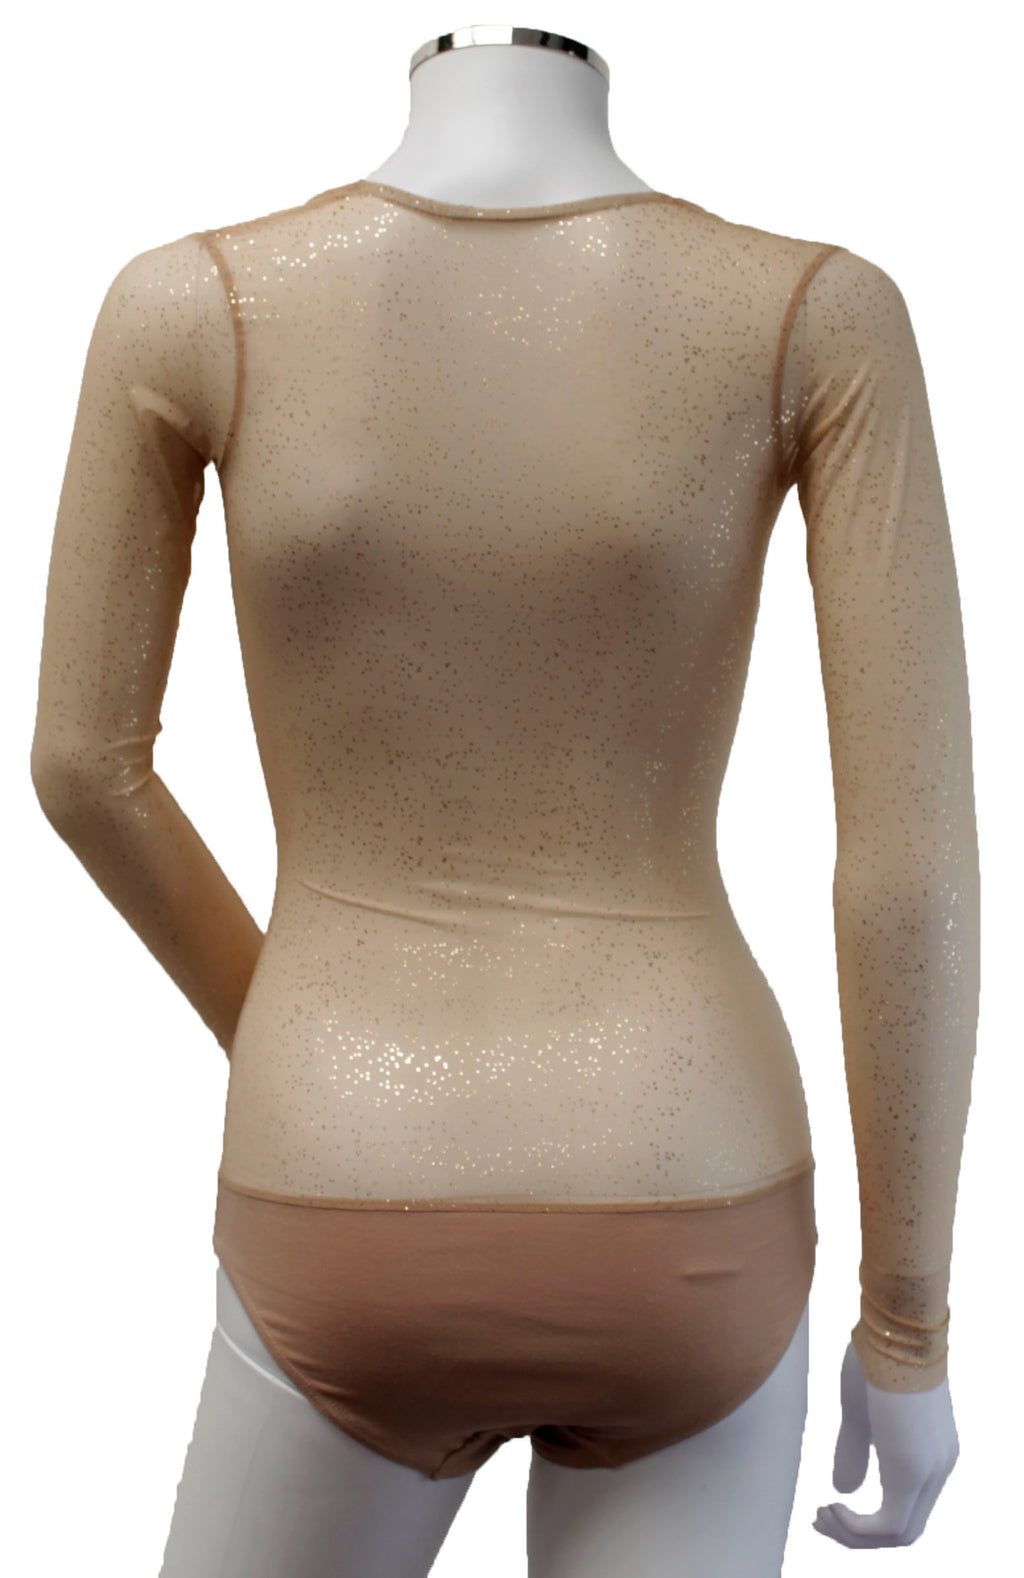 Underbust with Sleeves - Buttercream with Gold Sprinkles